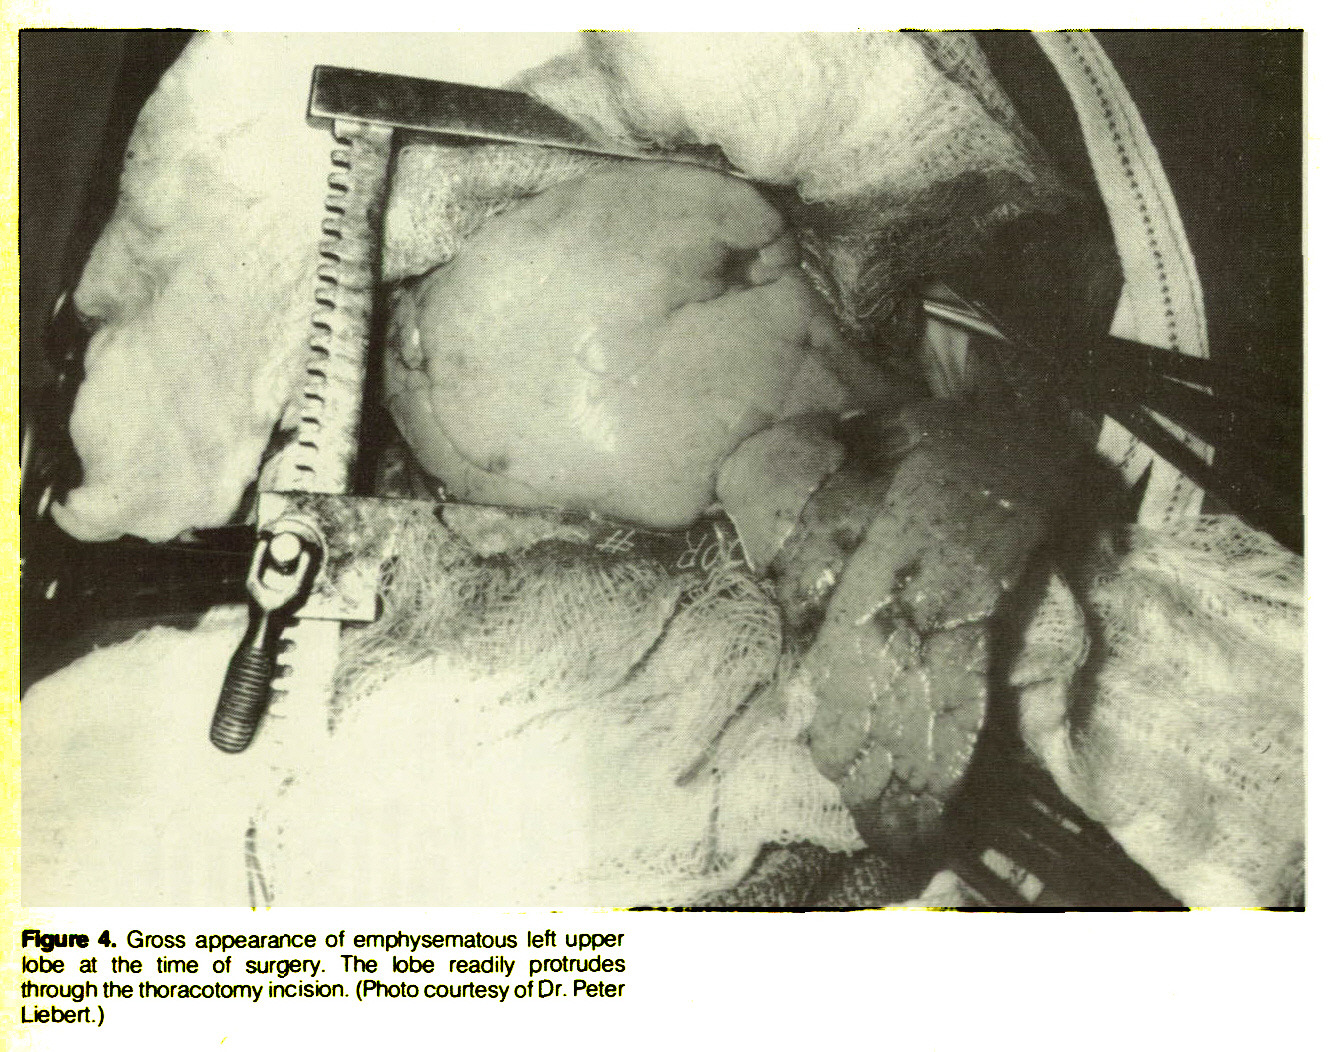 Figure 4. Gross appearance of emphysematous left upper lobe at the time of surgery. The tobe readily protrudes through the thoracotomy incision. (Photo courtesy of Dr. Peter Liebert.)